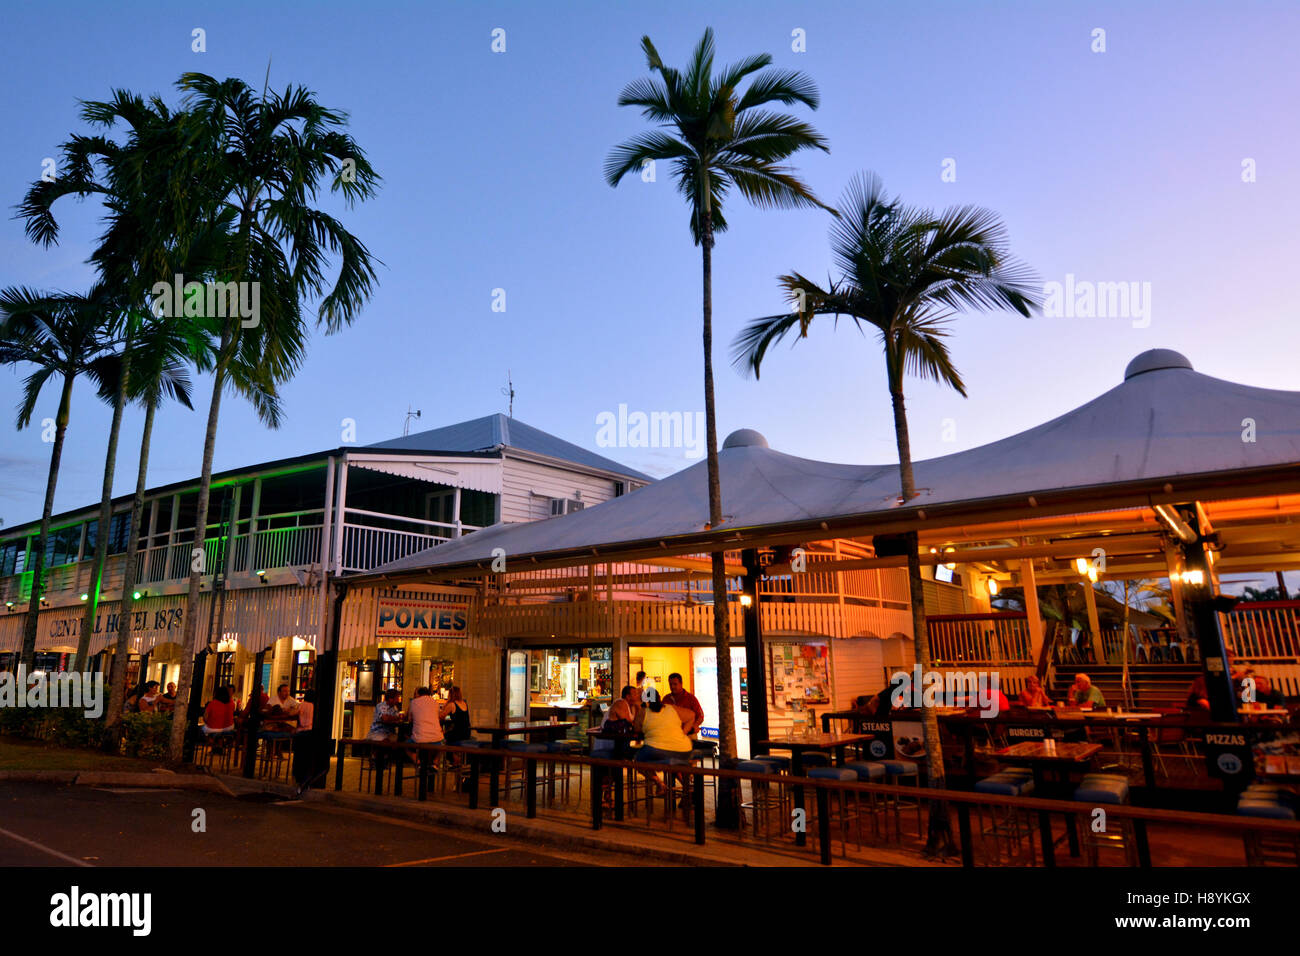 Pubs and restaurants on the main street of Port Douglas a very popular travel destination in the tropical north - Stock Image